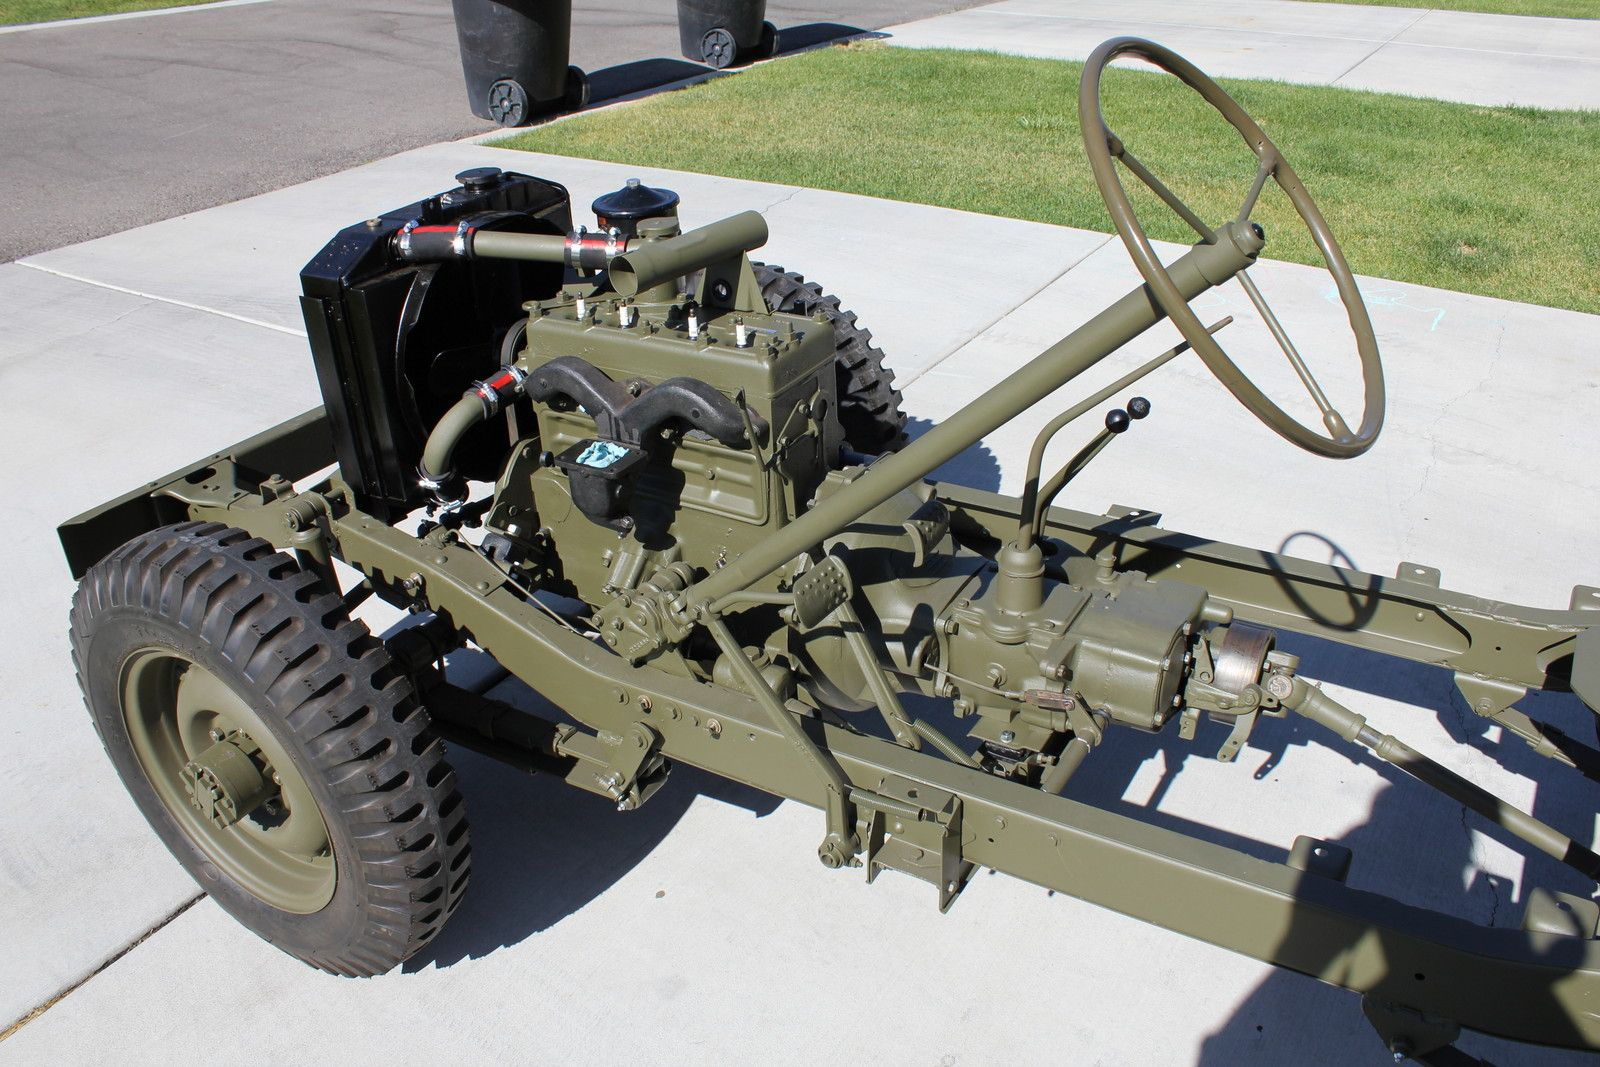 Favori willys jeep chassis - חיפוש ב-Google | Willys Ref | Pinterest  HB51